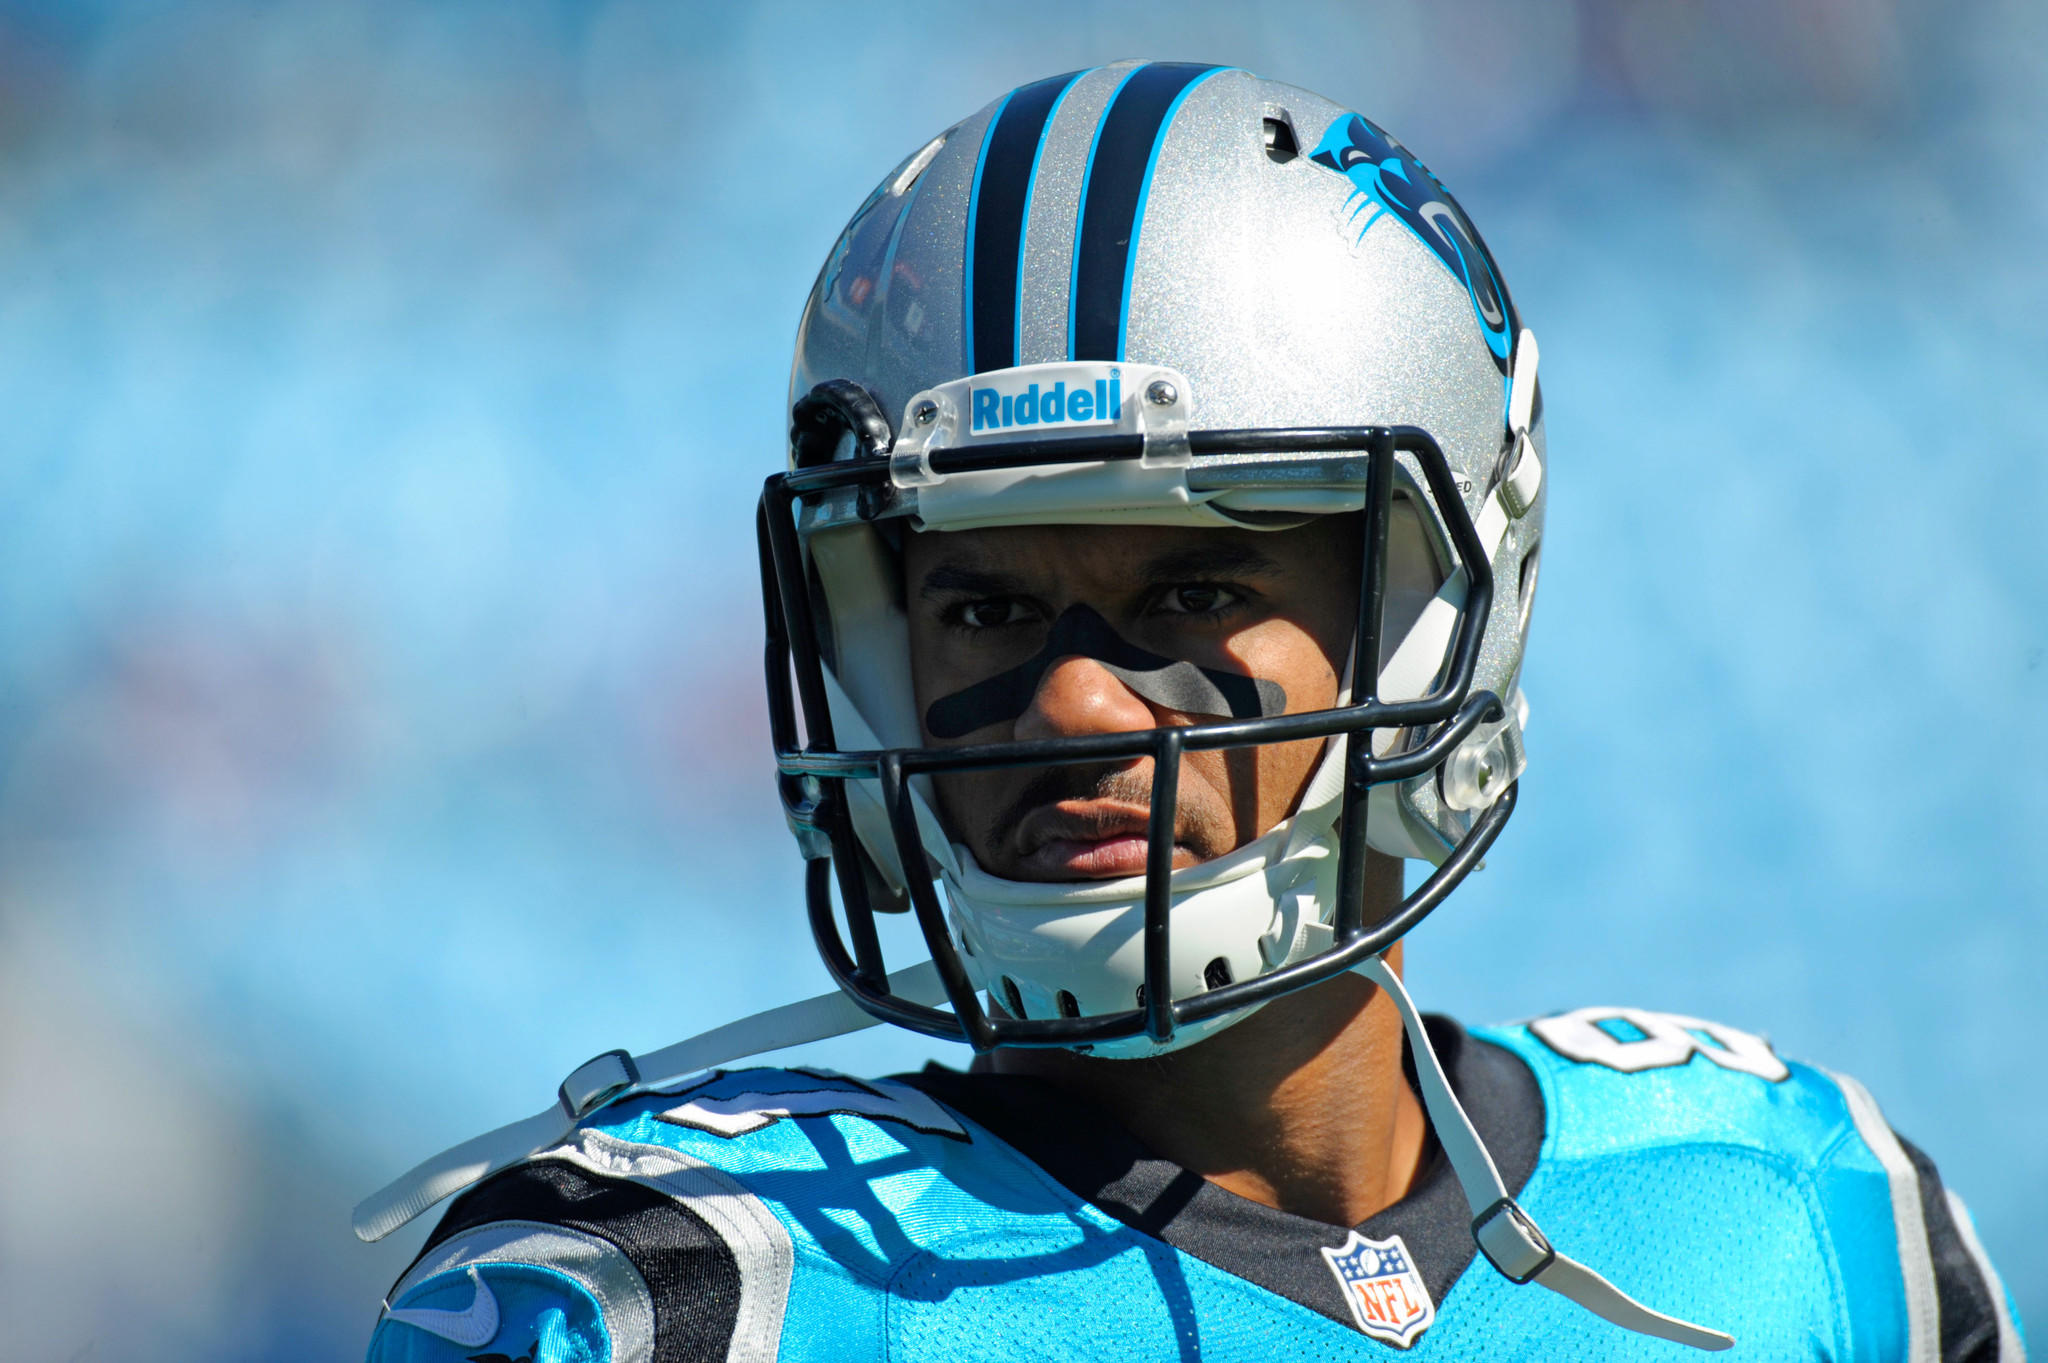 Panthers wide receiver Domenik Hixon before a 2013 game.